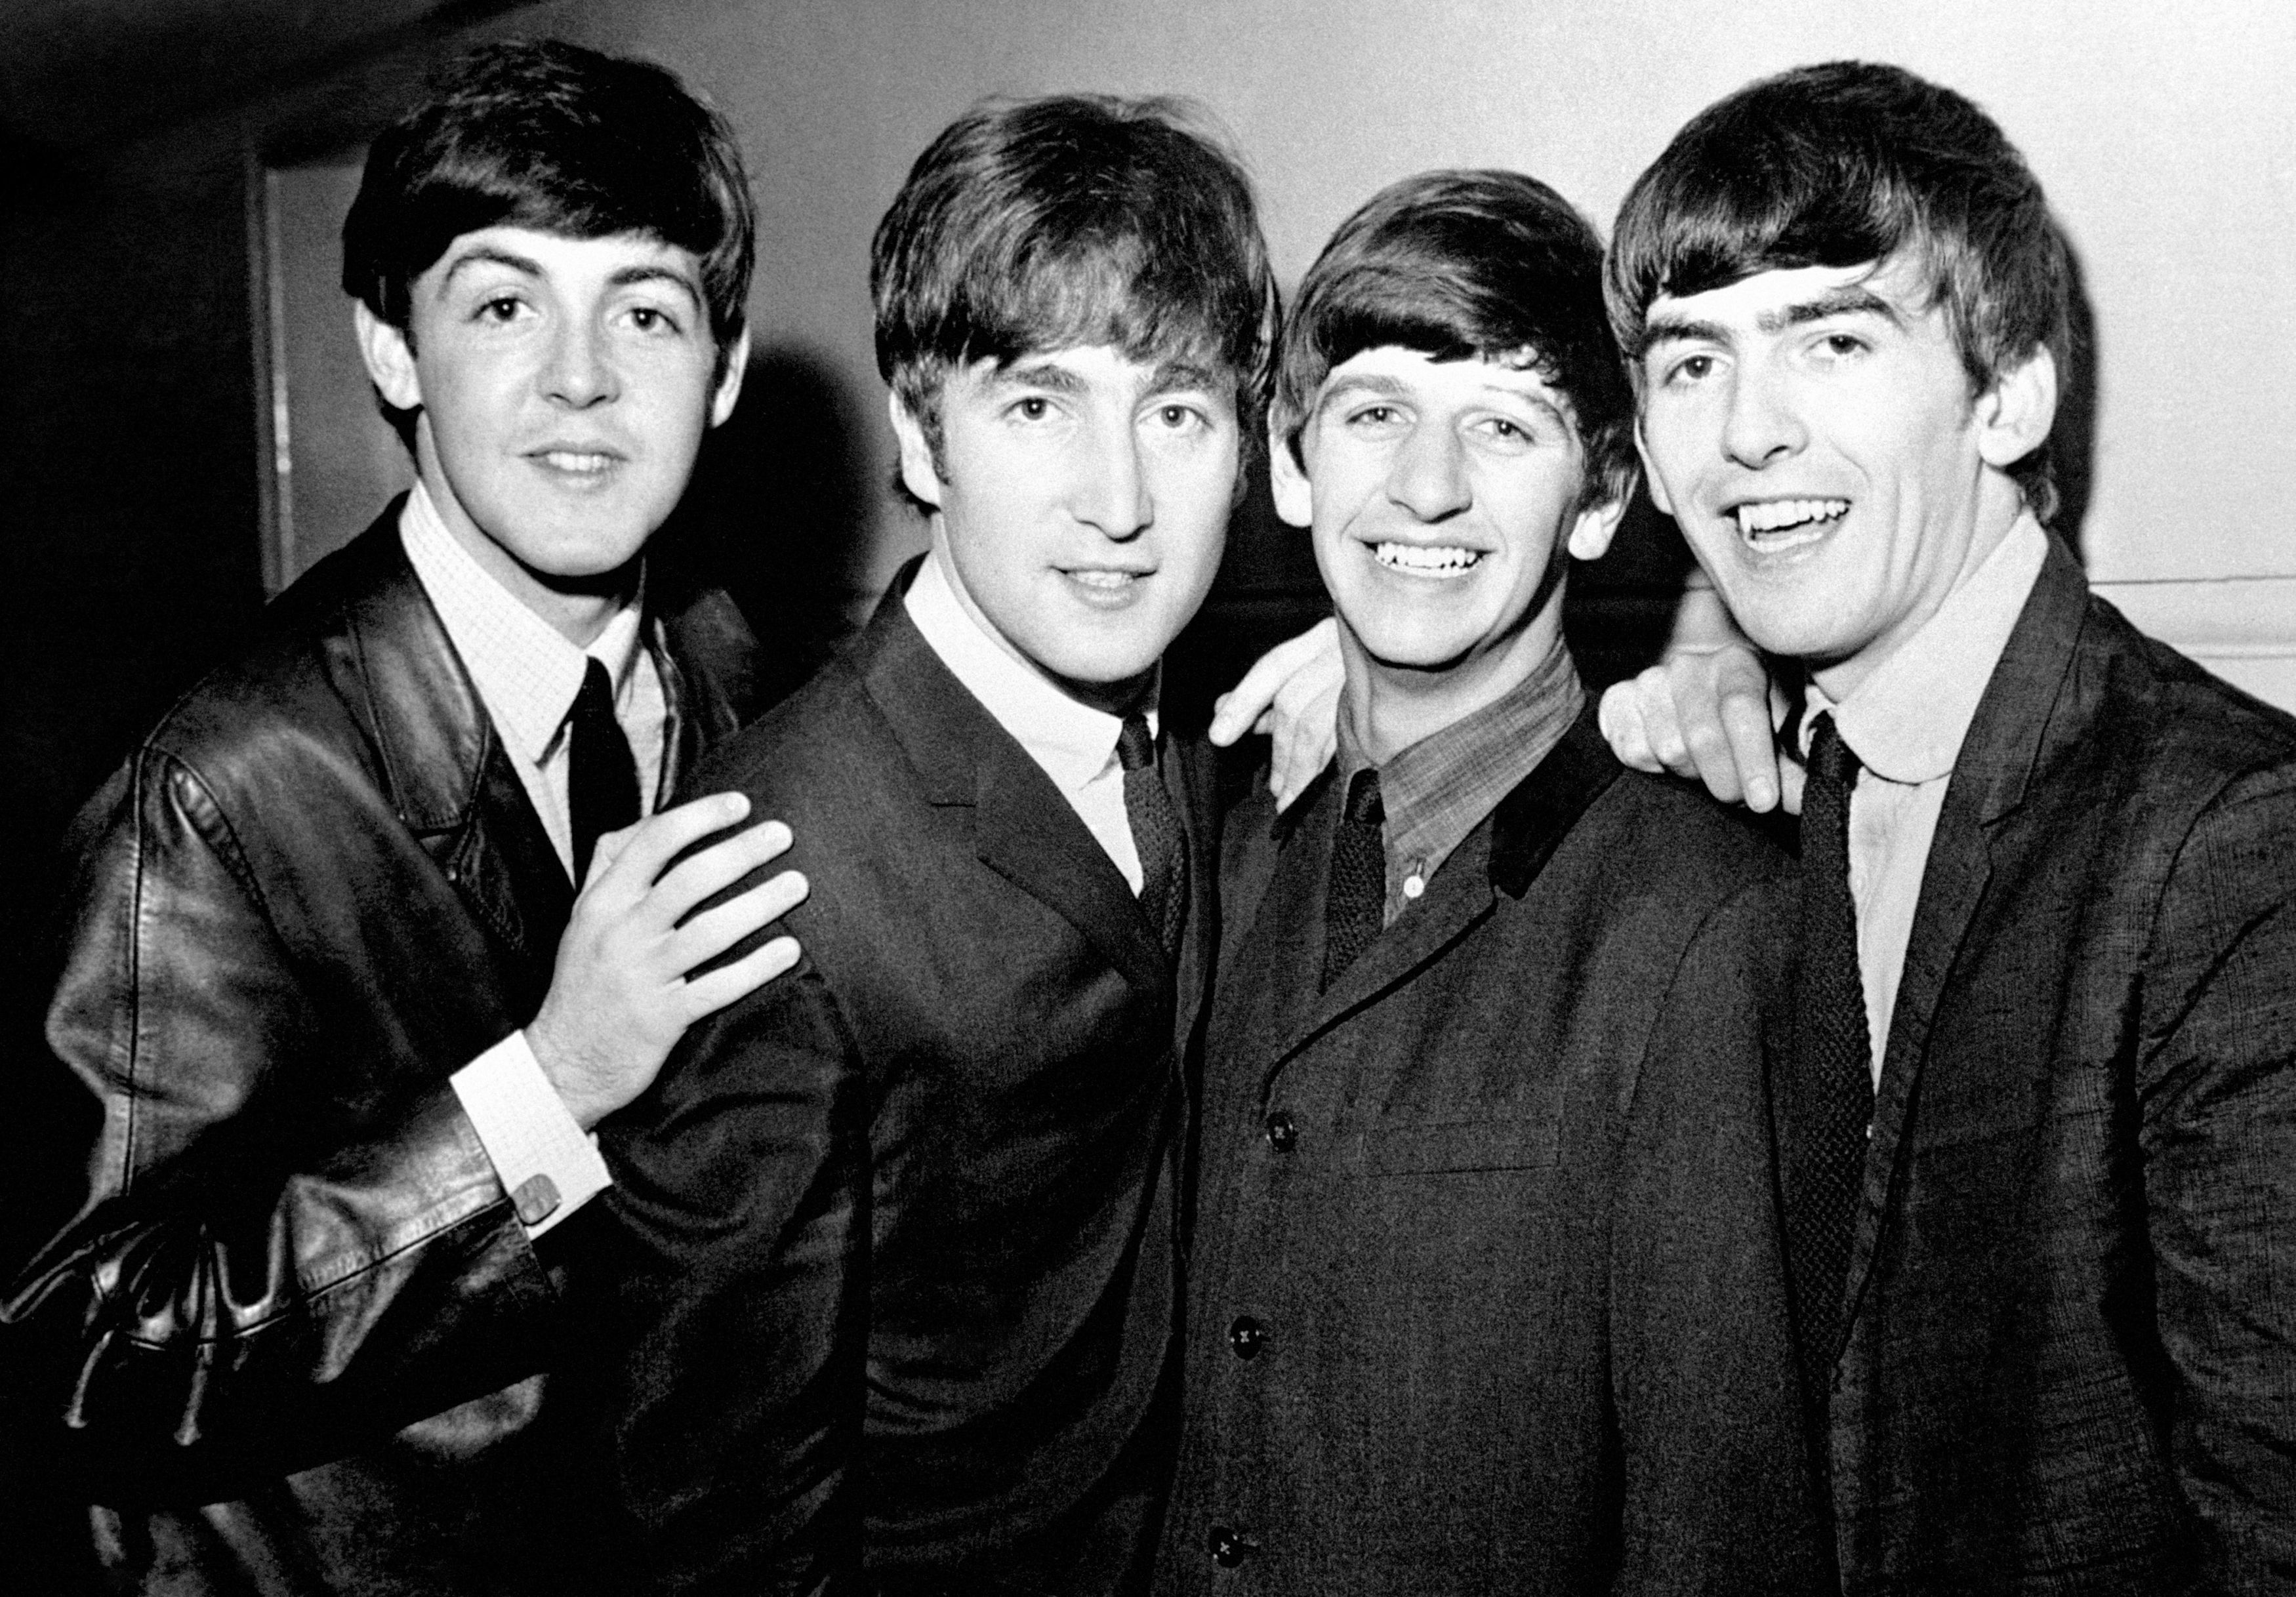 The Beatles movie is happening: Ron Howard to direct OFFICIAL documentary on Fab Four's early career